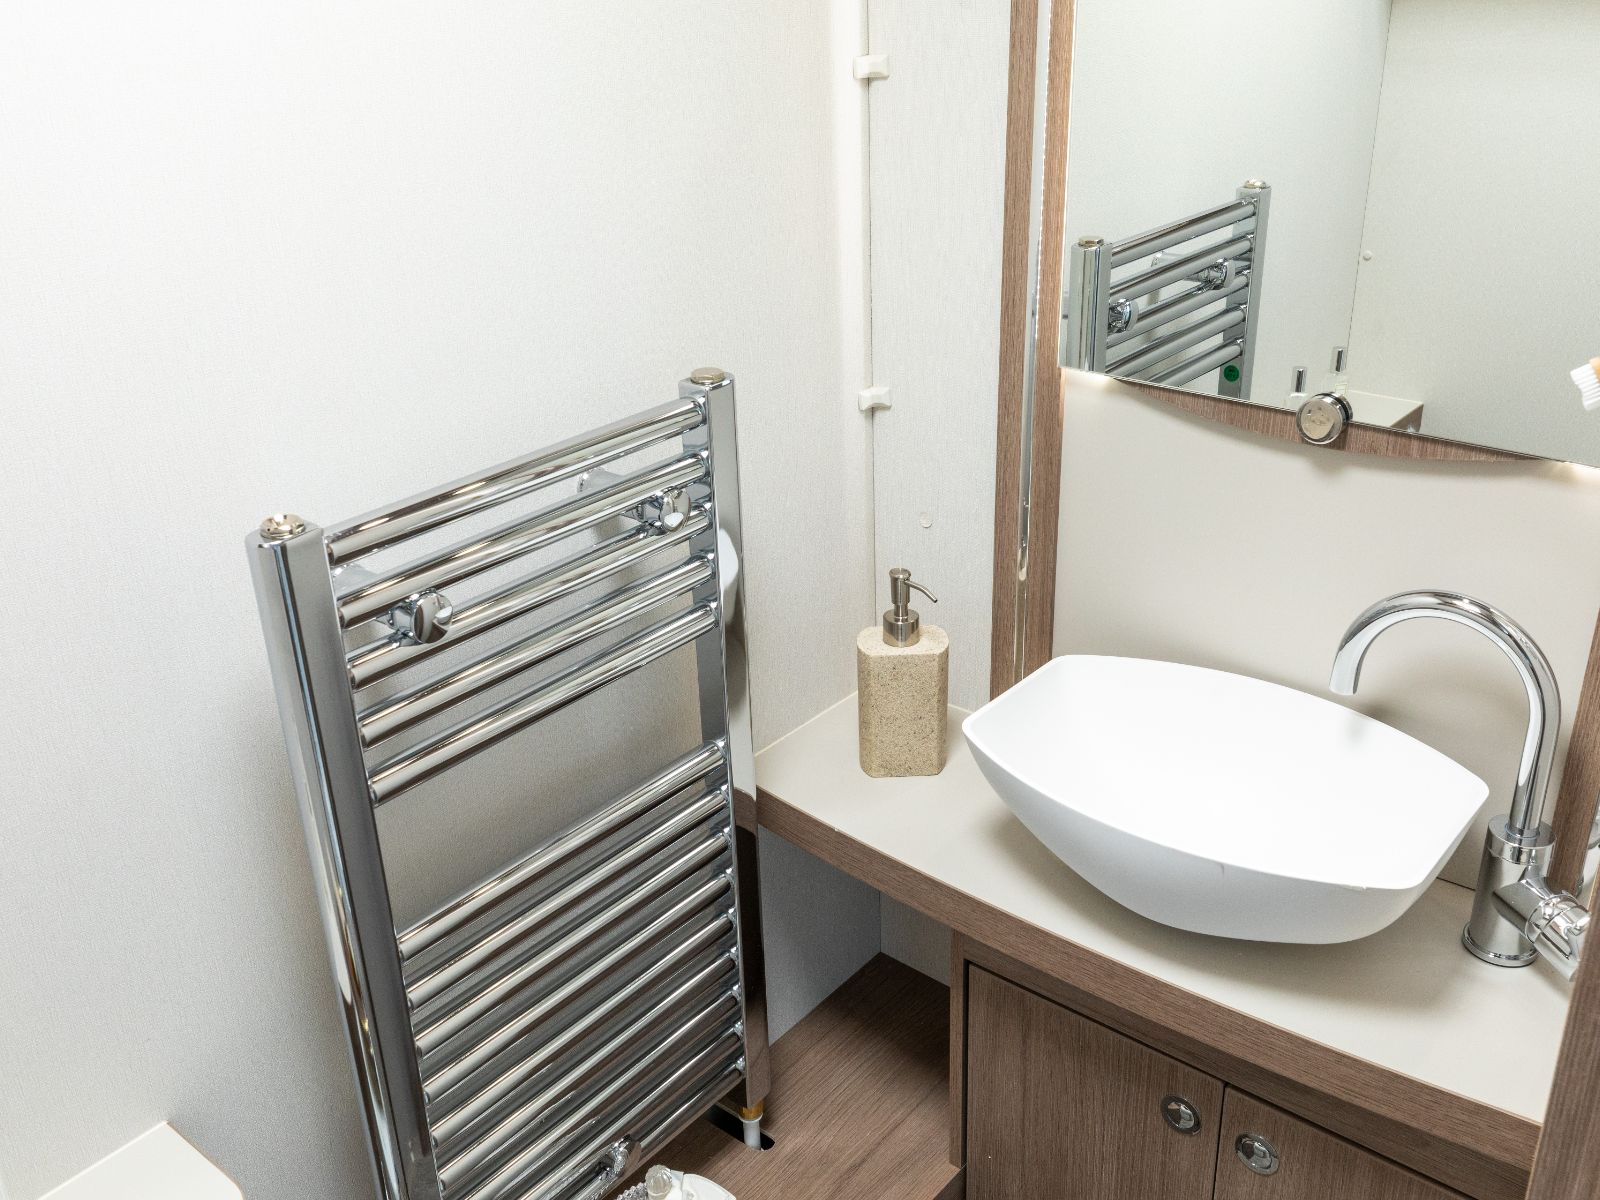 Bathroom sink, mirror and heated towel rack'